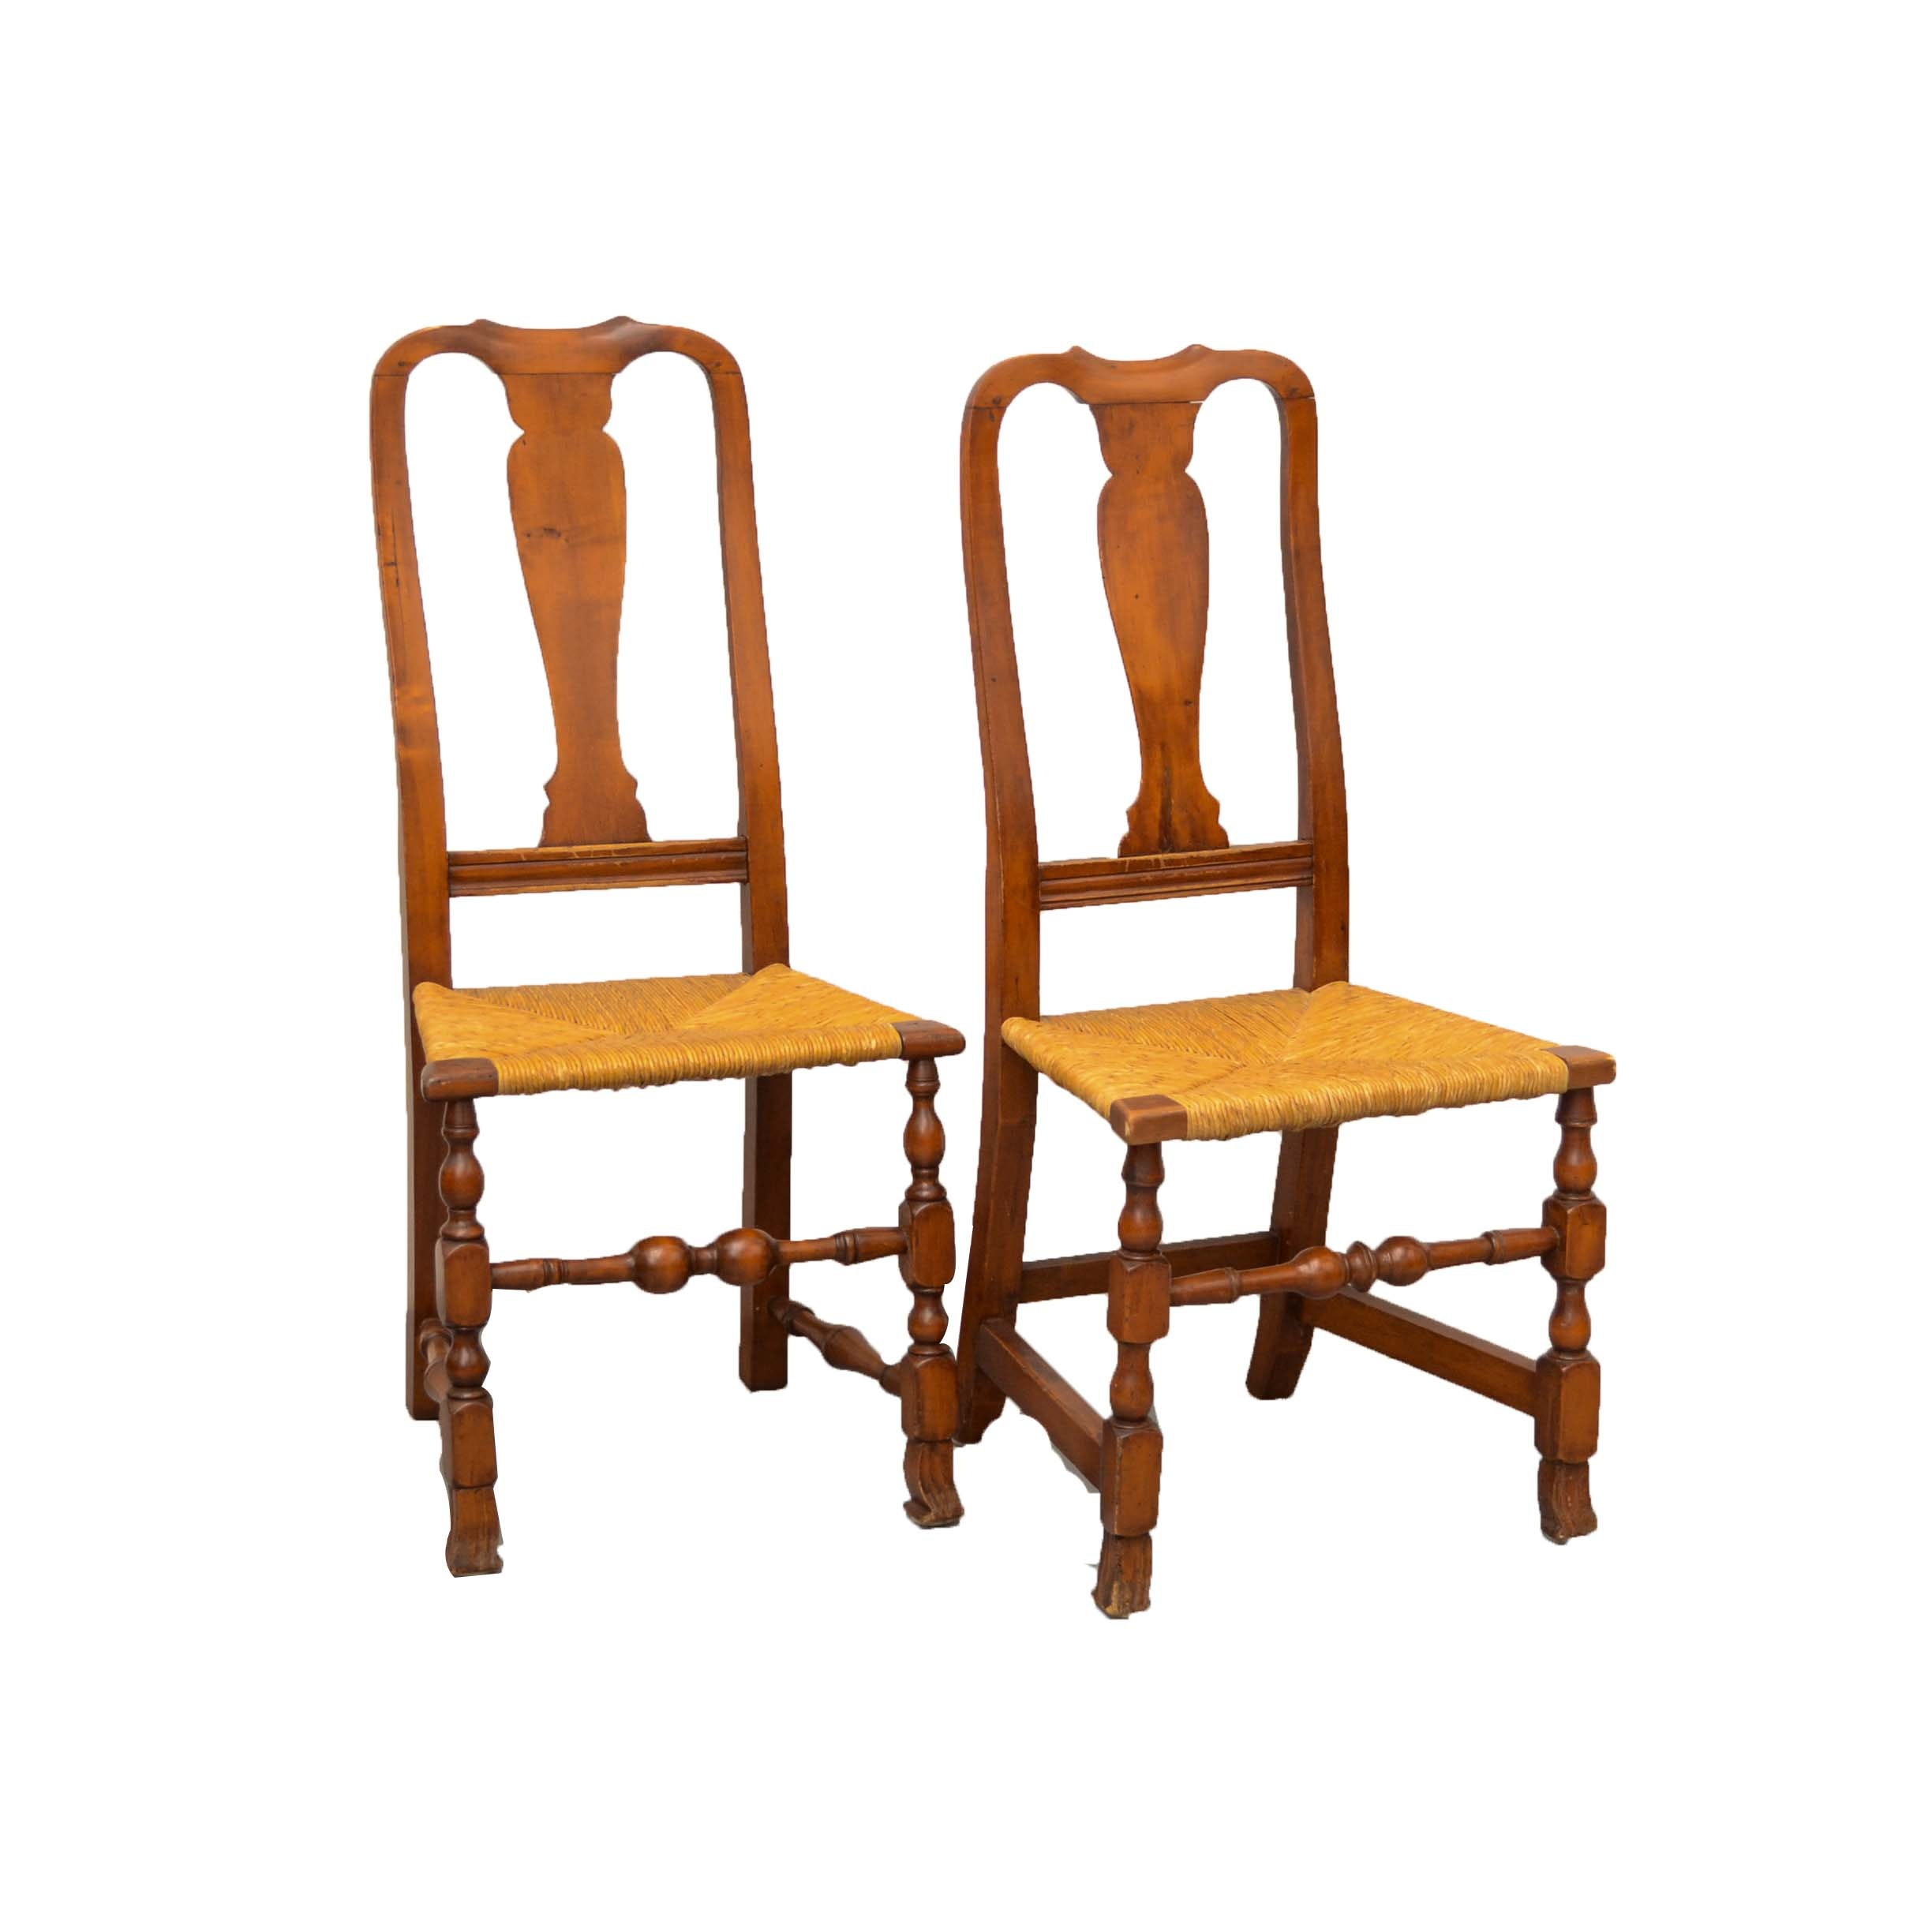 Charmant Two Antique Queen Anne Style Rush Bottom Chairs ...